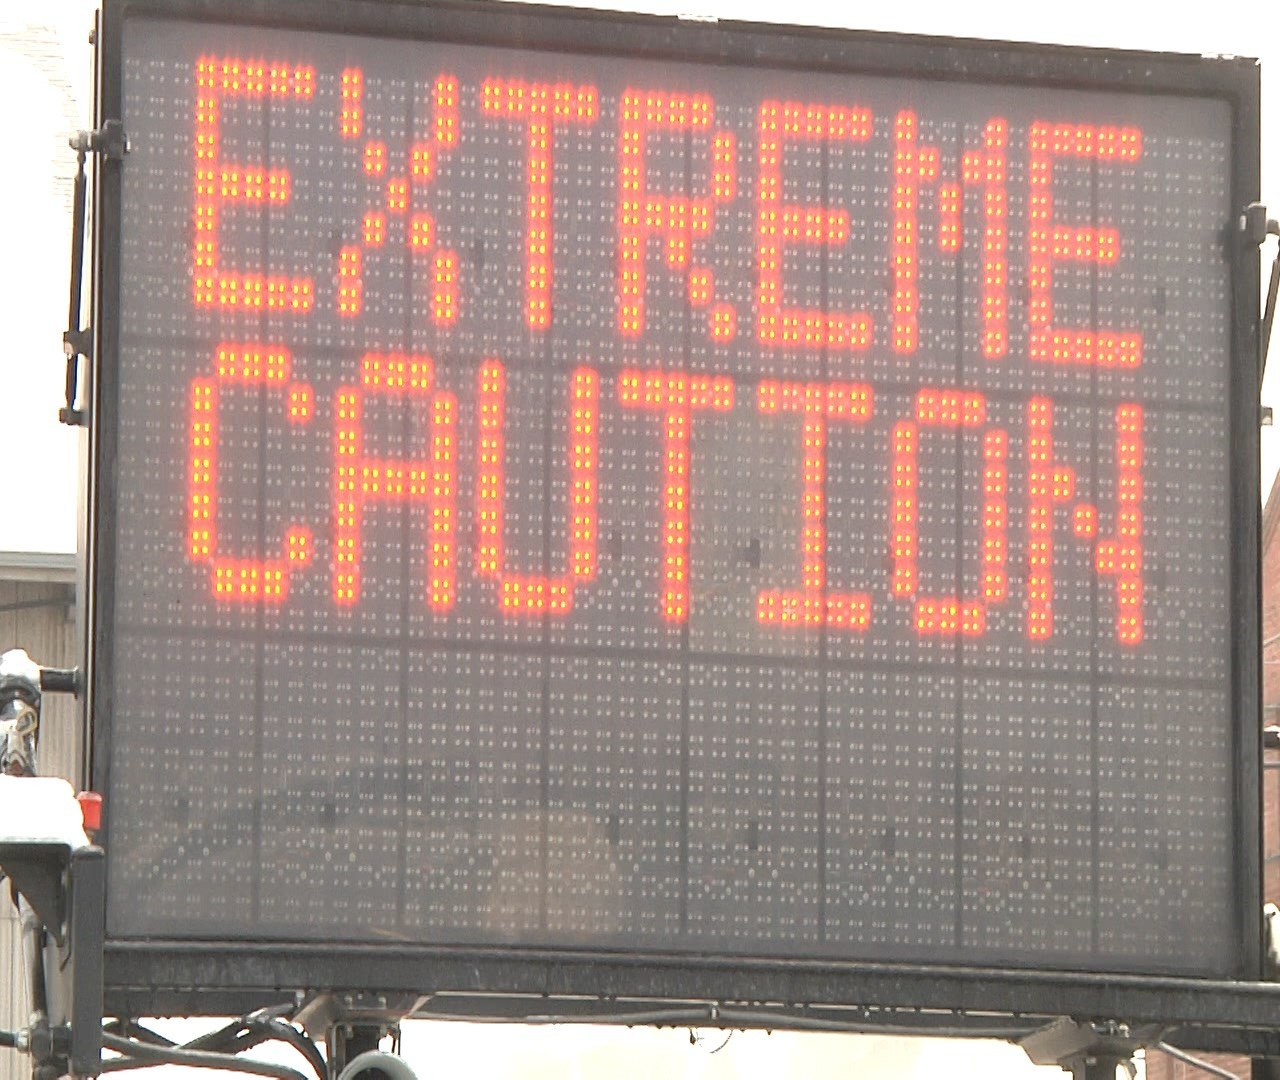 Icy road conditions result in closure of part of I-90 ...